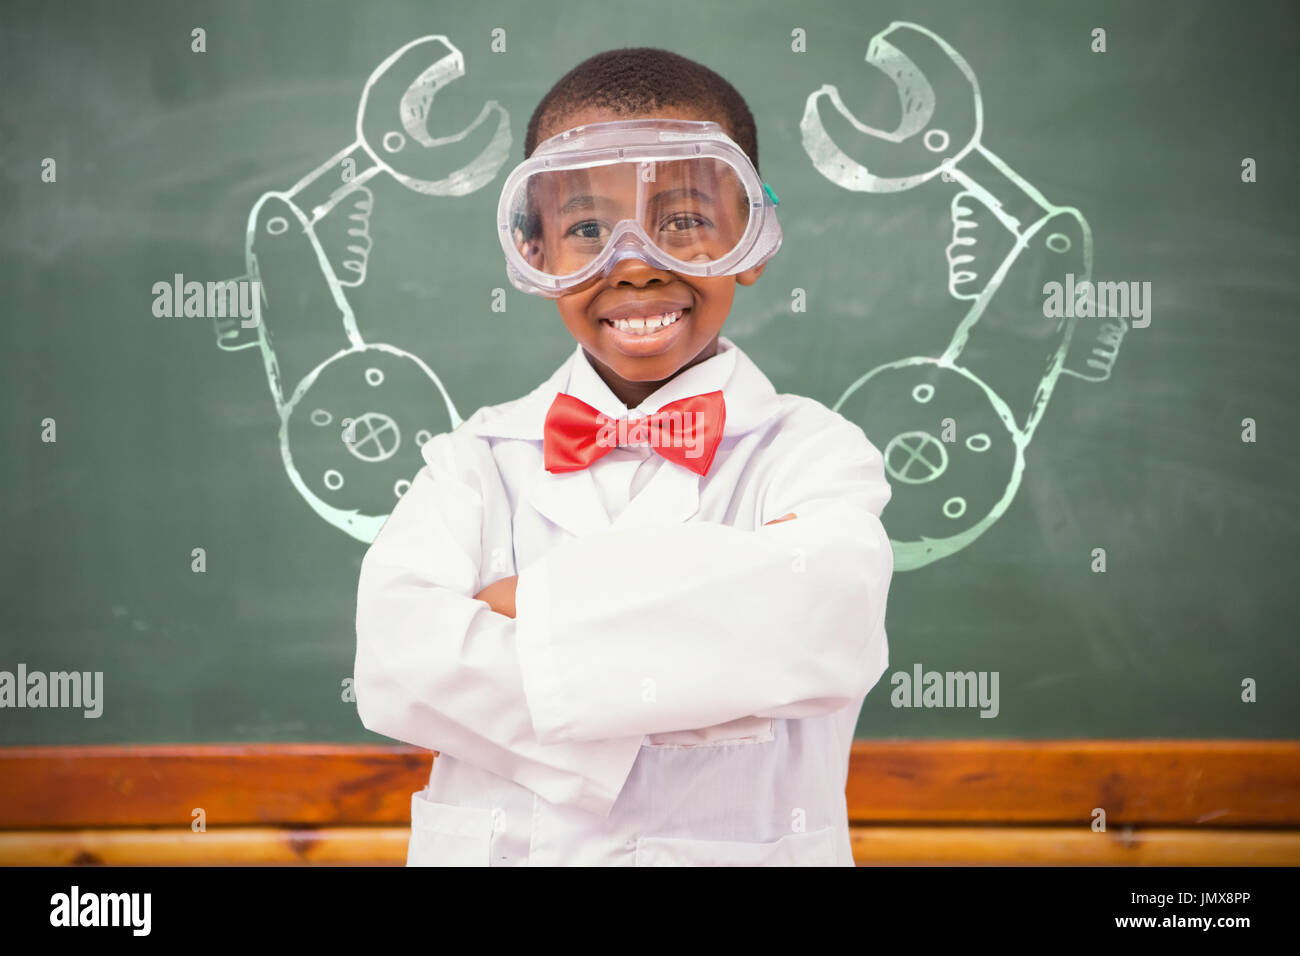 Illustrative image of hand tool against chemistry pupil smiling at camera with arms crossed - Stock Image